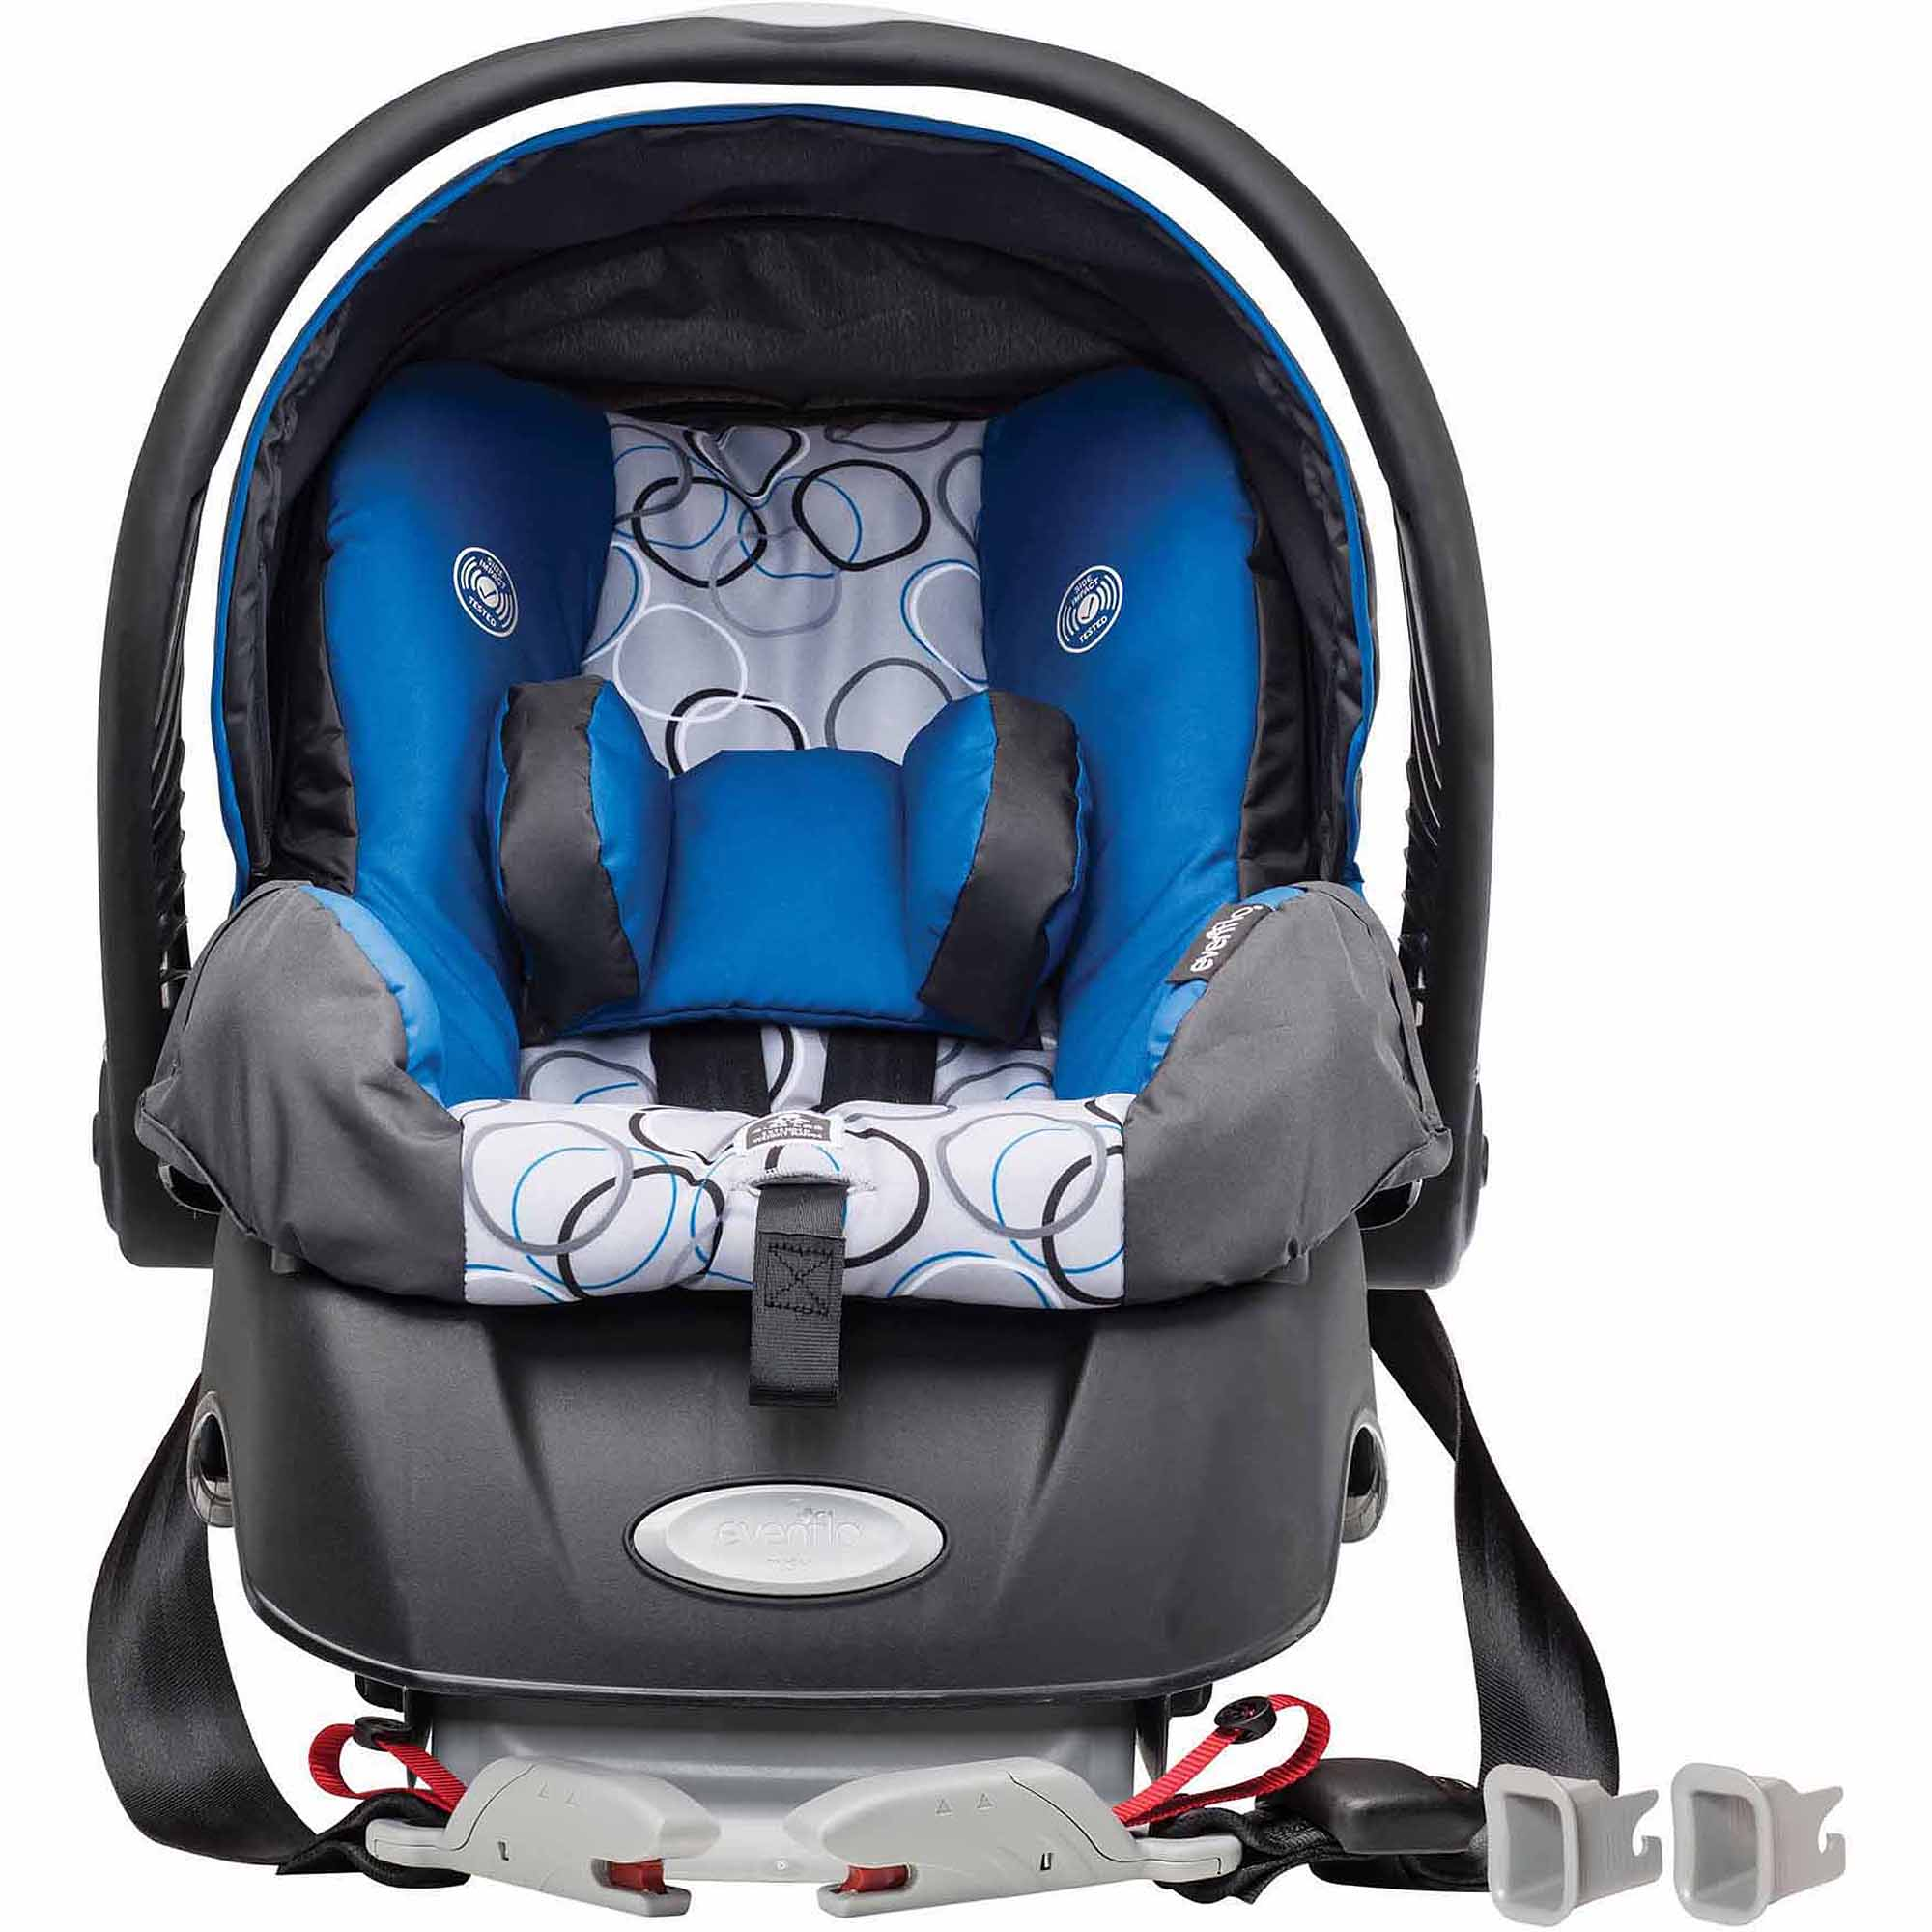 Evenflo Embrace Select Infant Car Seat with